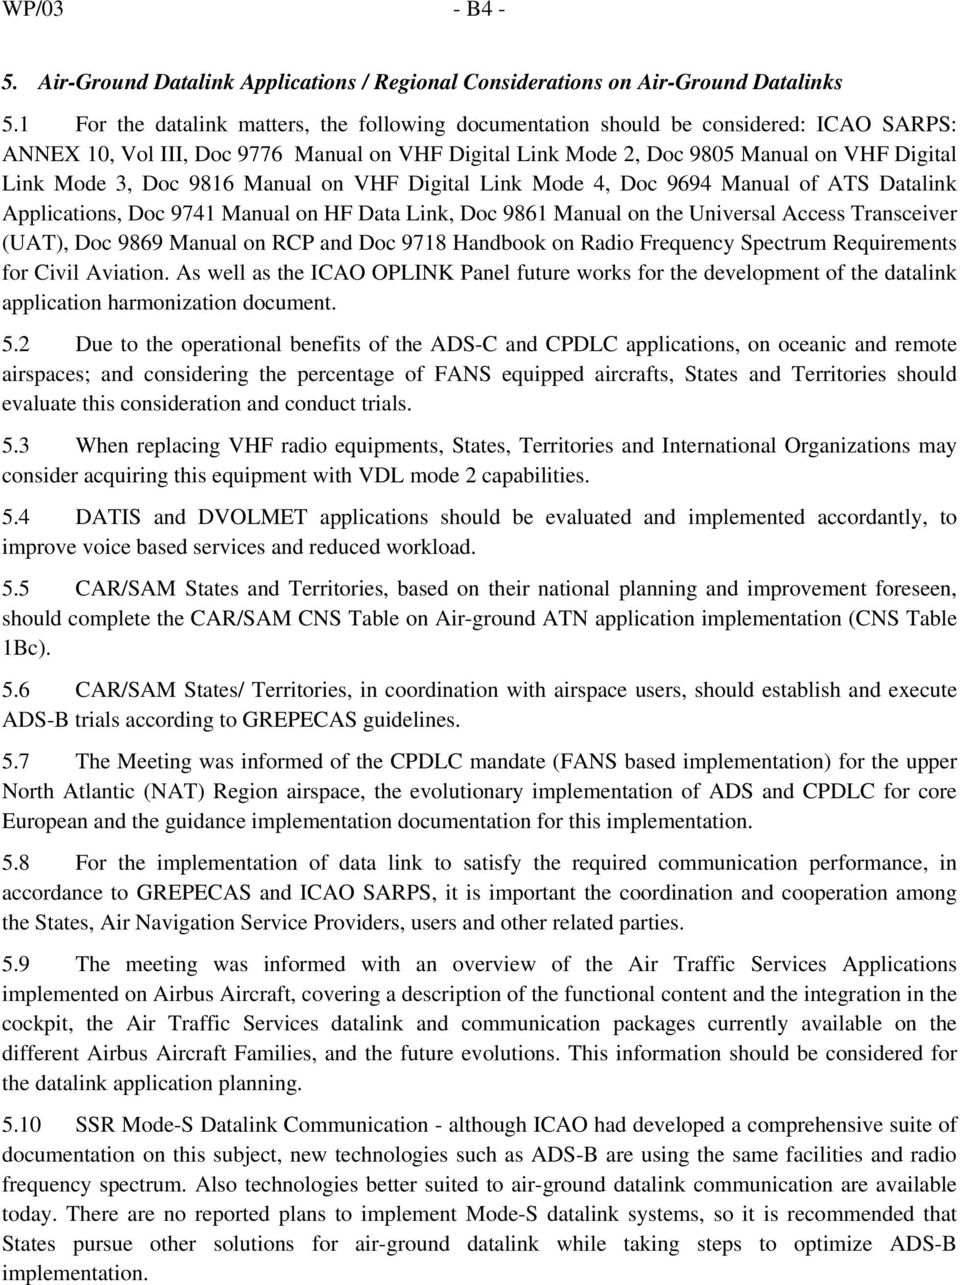 Doc 9816 Manual on VHF Digital Link Mode 4, Doc 9694 Manual of ATS Datalink Applications, Doc 9741 Manual on HF Data Link, Doc 9861 Manual on the Universal Access Transceiver (UAT), Doc 9869 Manual